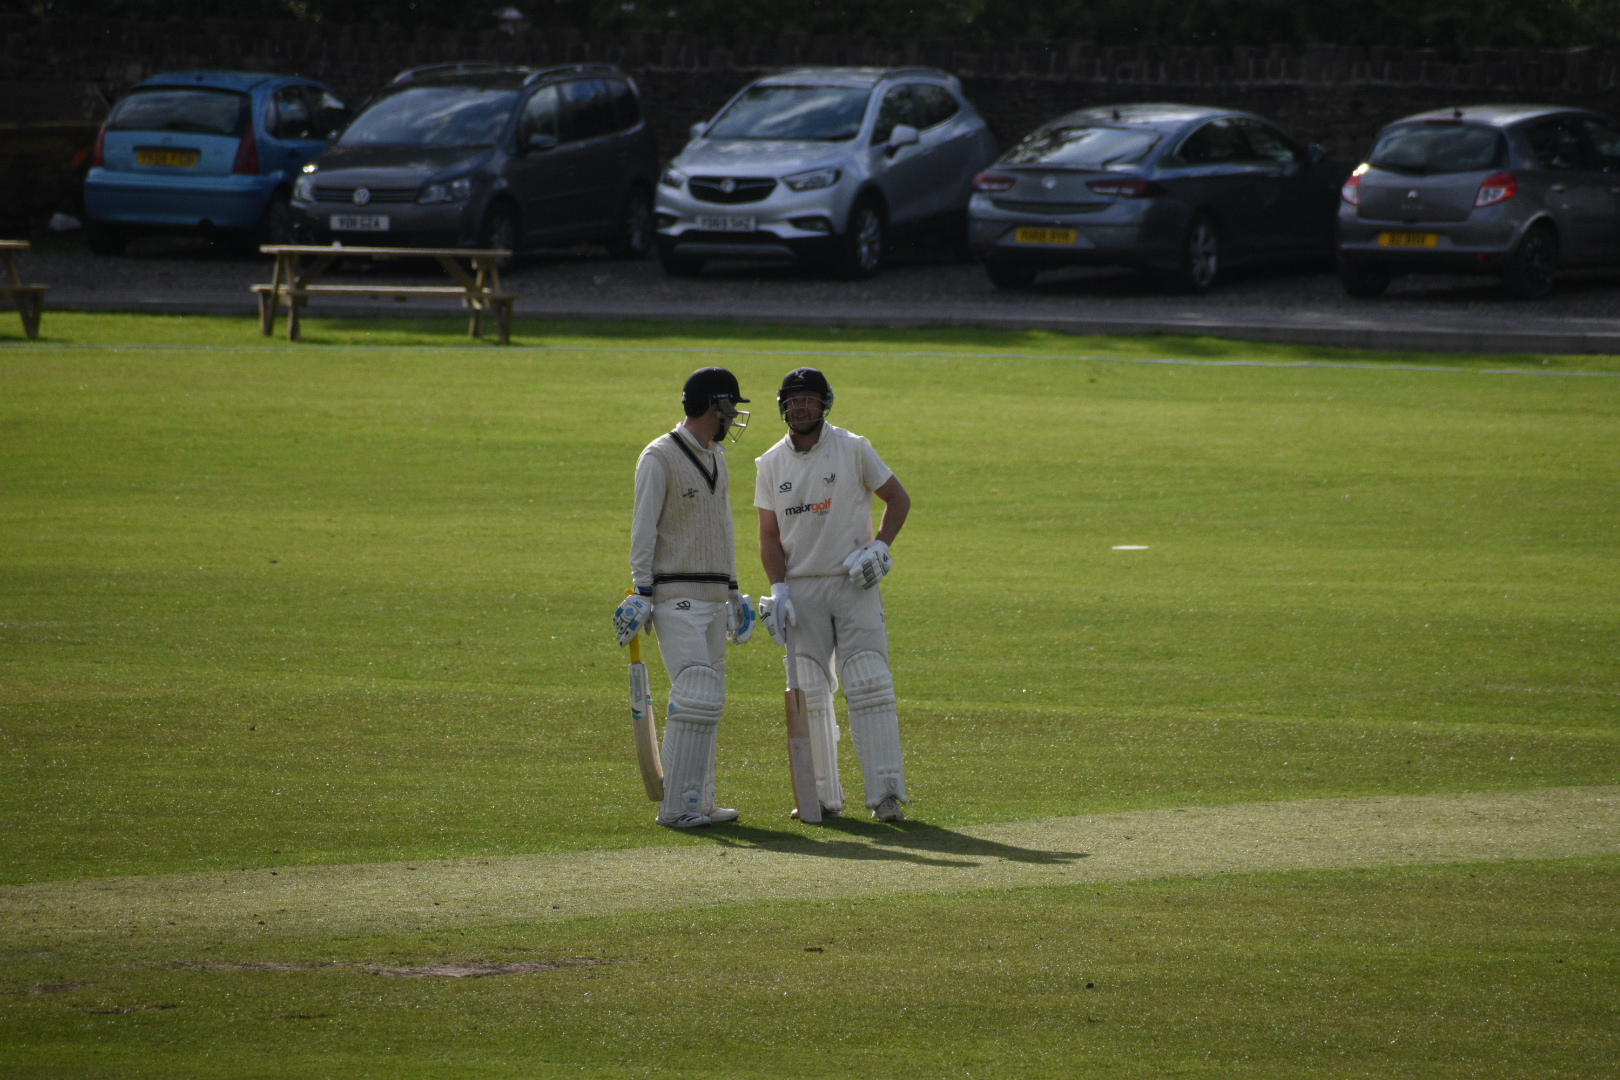 Honley Seize Initiative To Move To Second - Premiership Day 7 Review